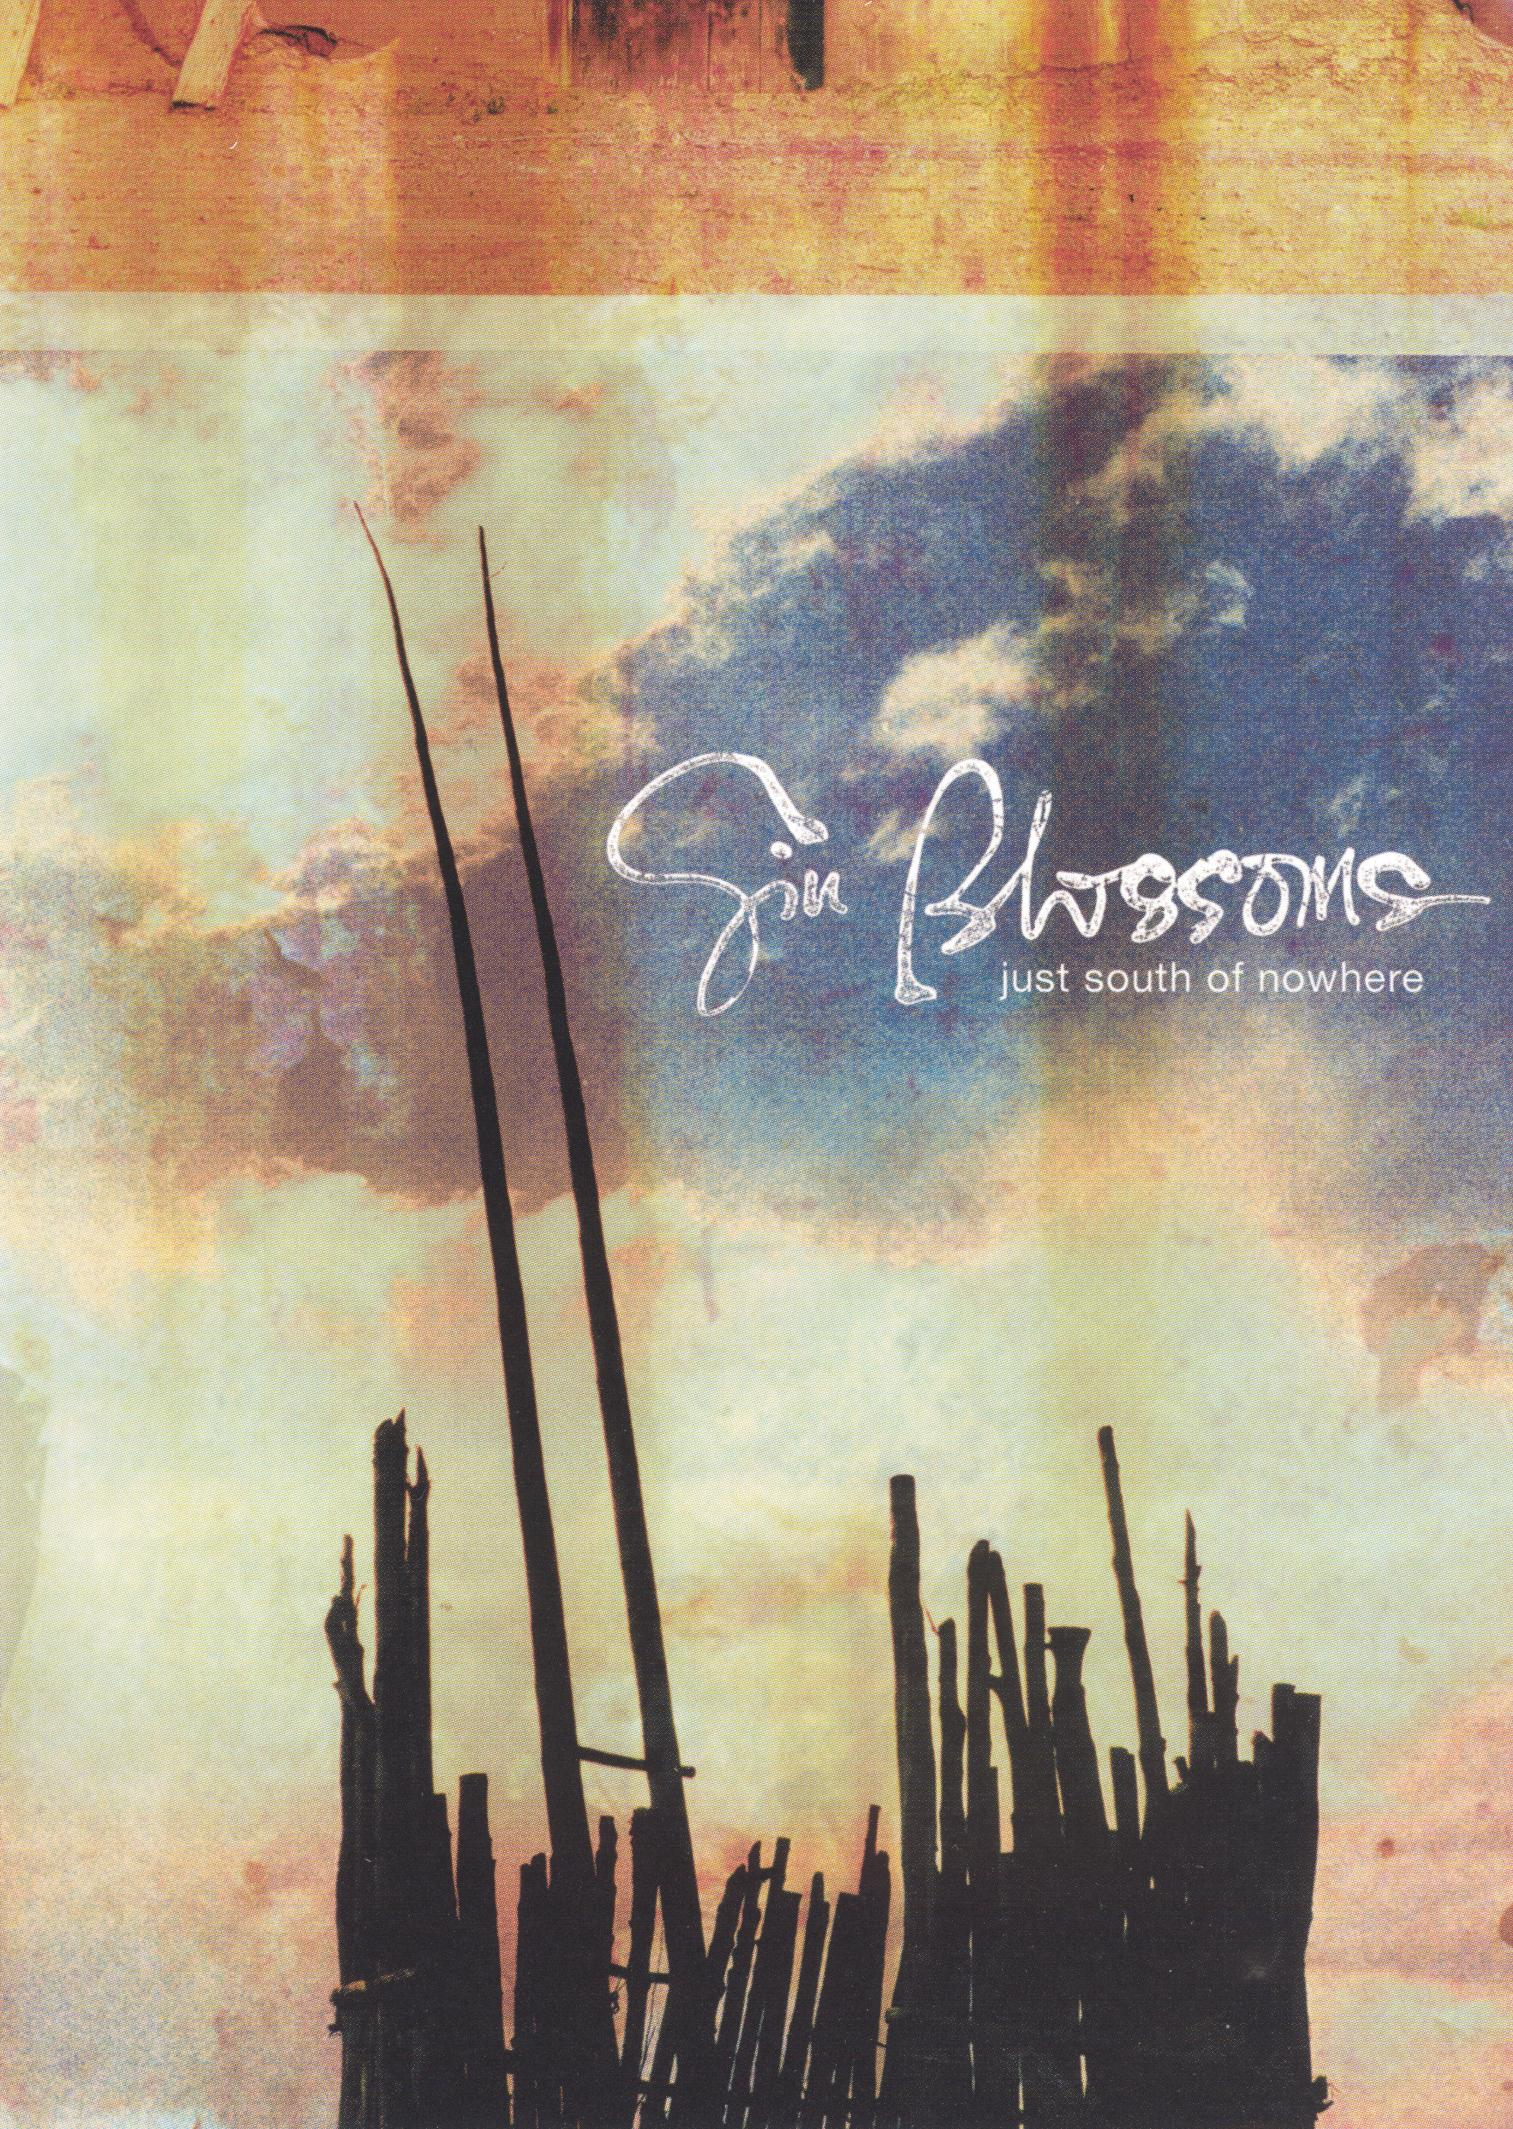 The Gin Blossoms: Just South of Nowhere